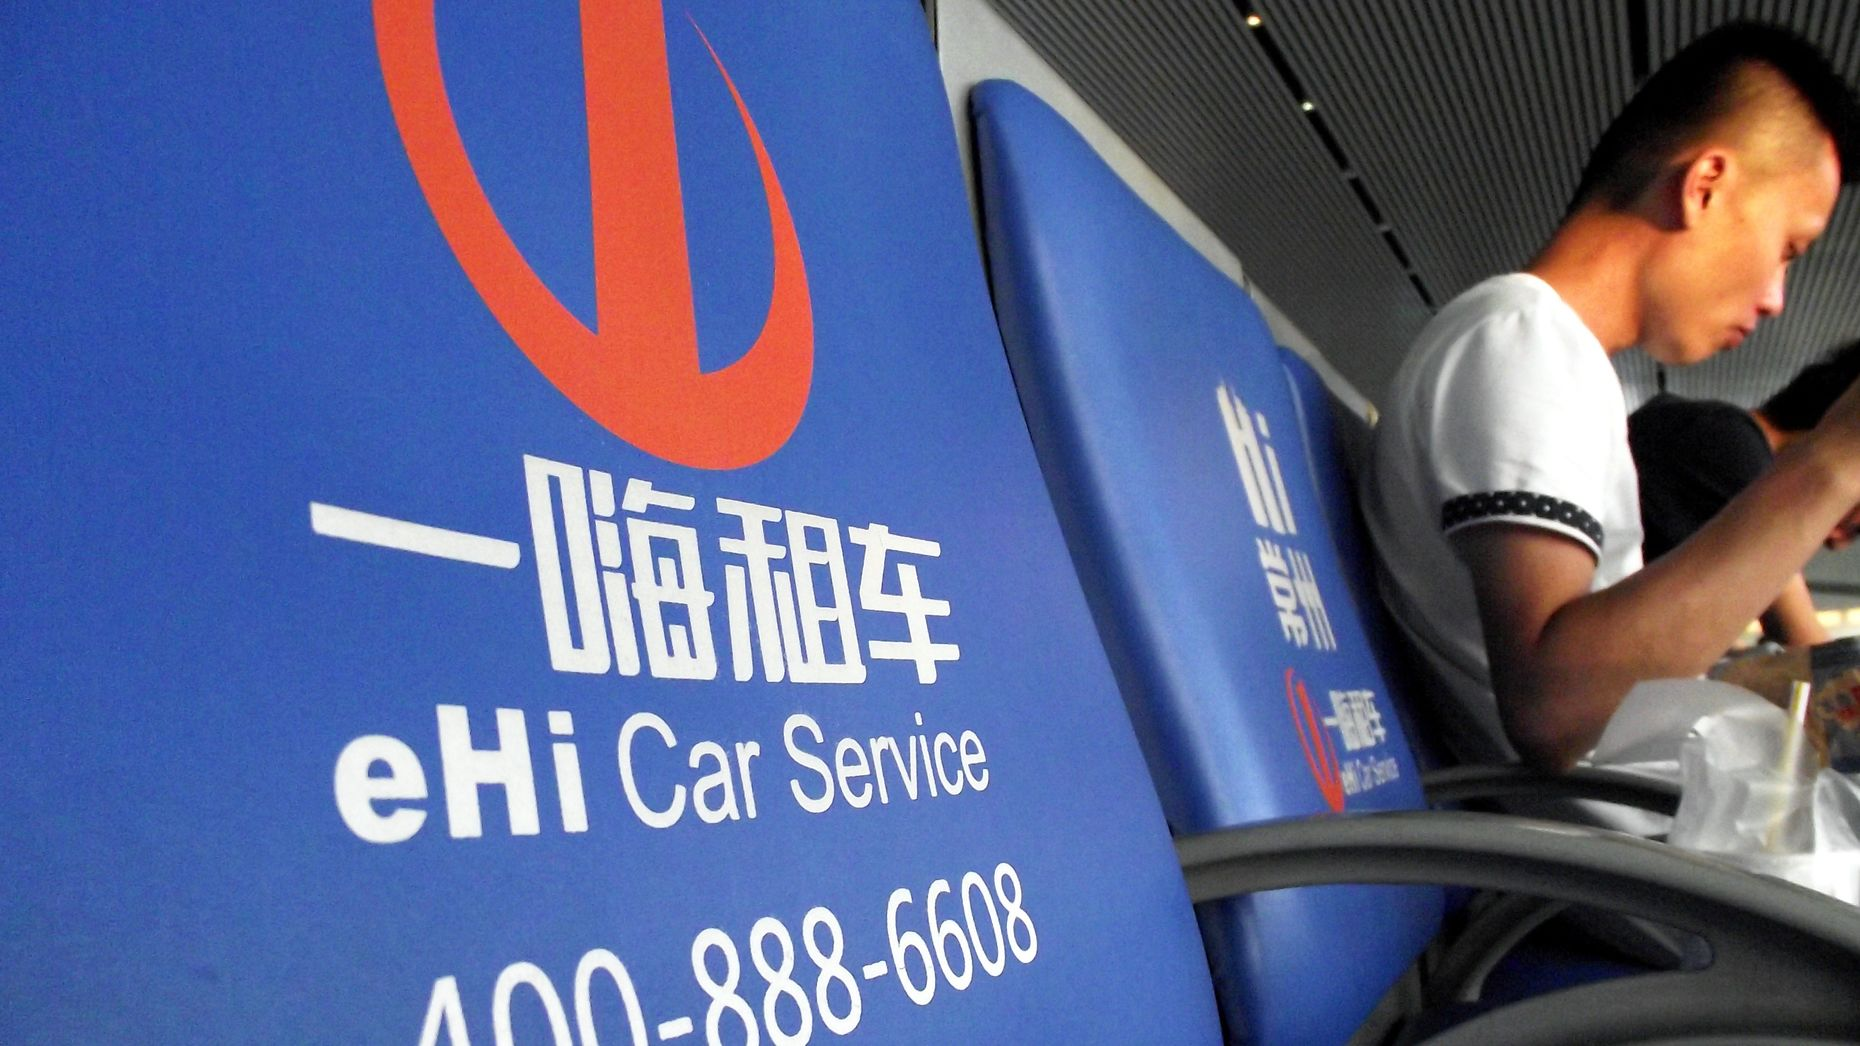 An ad for eHi in a railway station in China. Photo by AP.